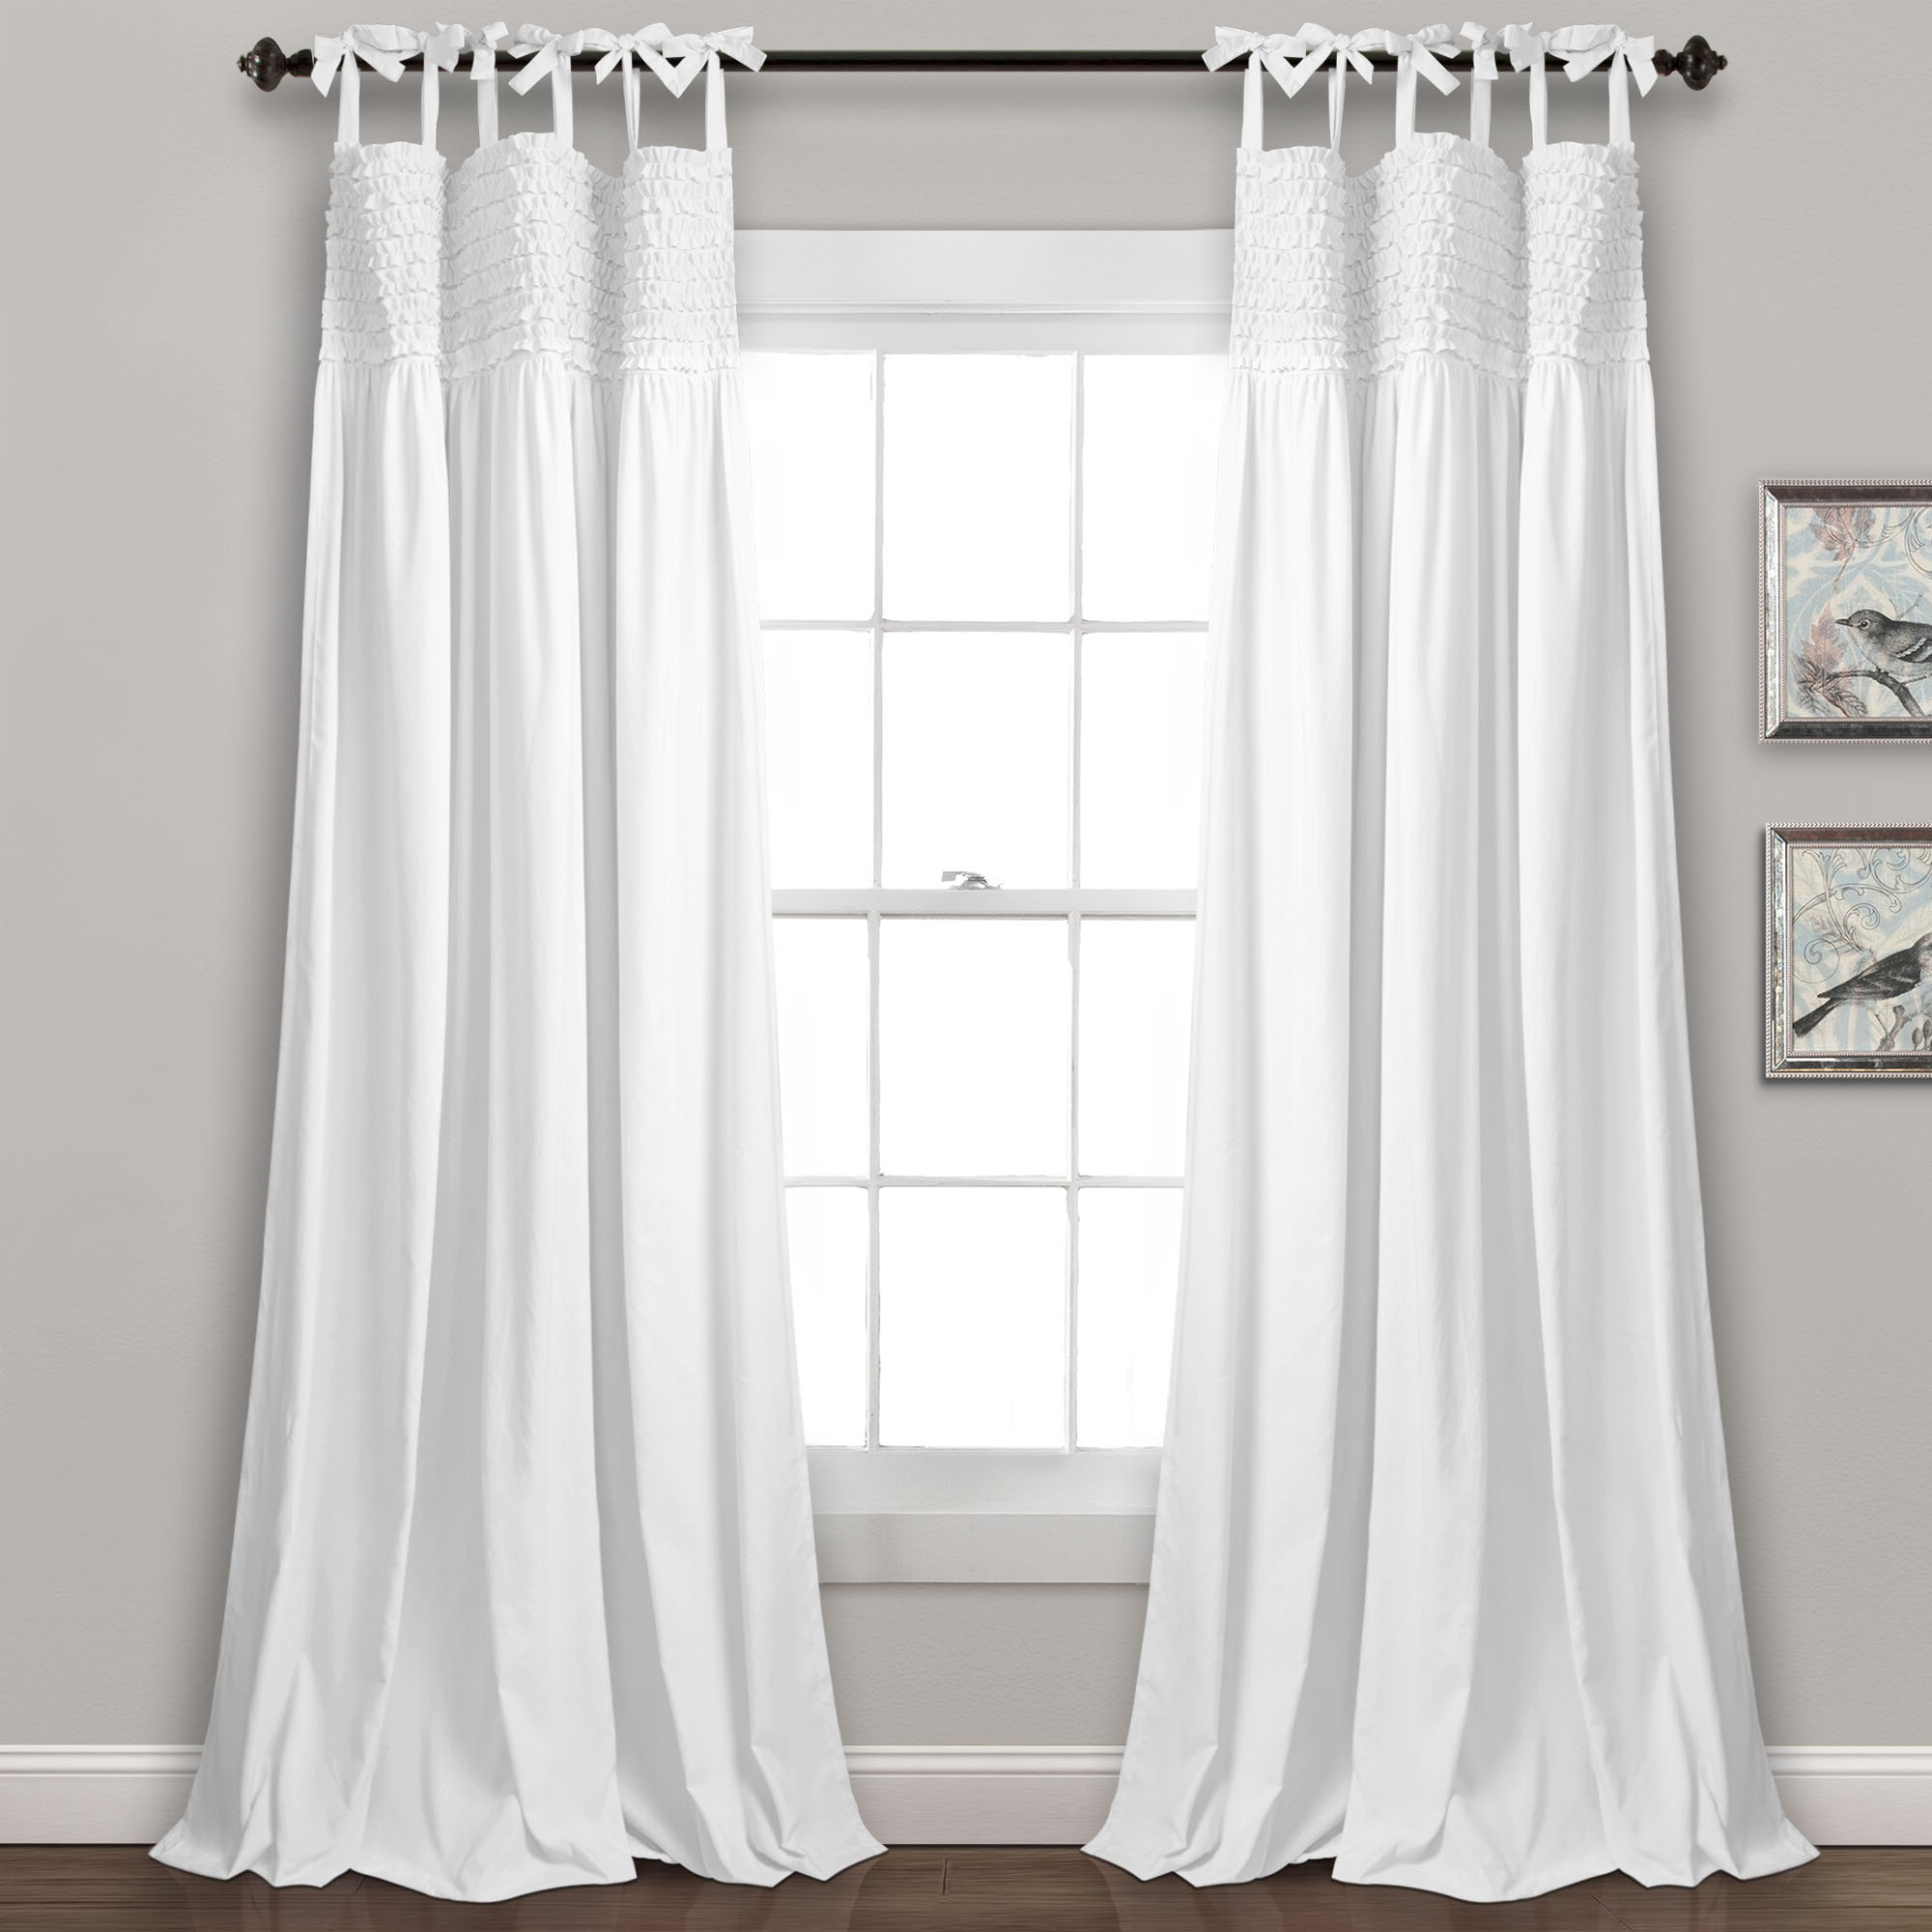 Famous Marine Life Motif Knitted Lace Window Curtain Pieces Pertaining To Edvin Ruffle Solid Semi Sheer Tie Top Window Panels (View 15 of 20)